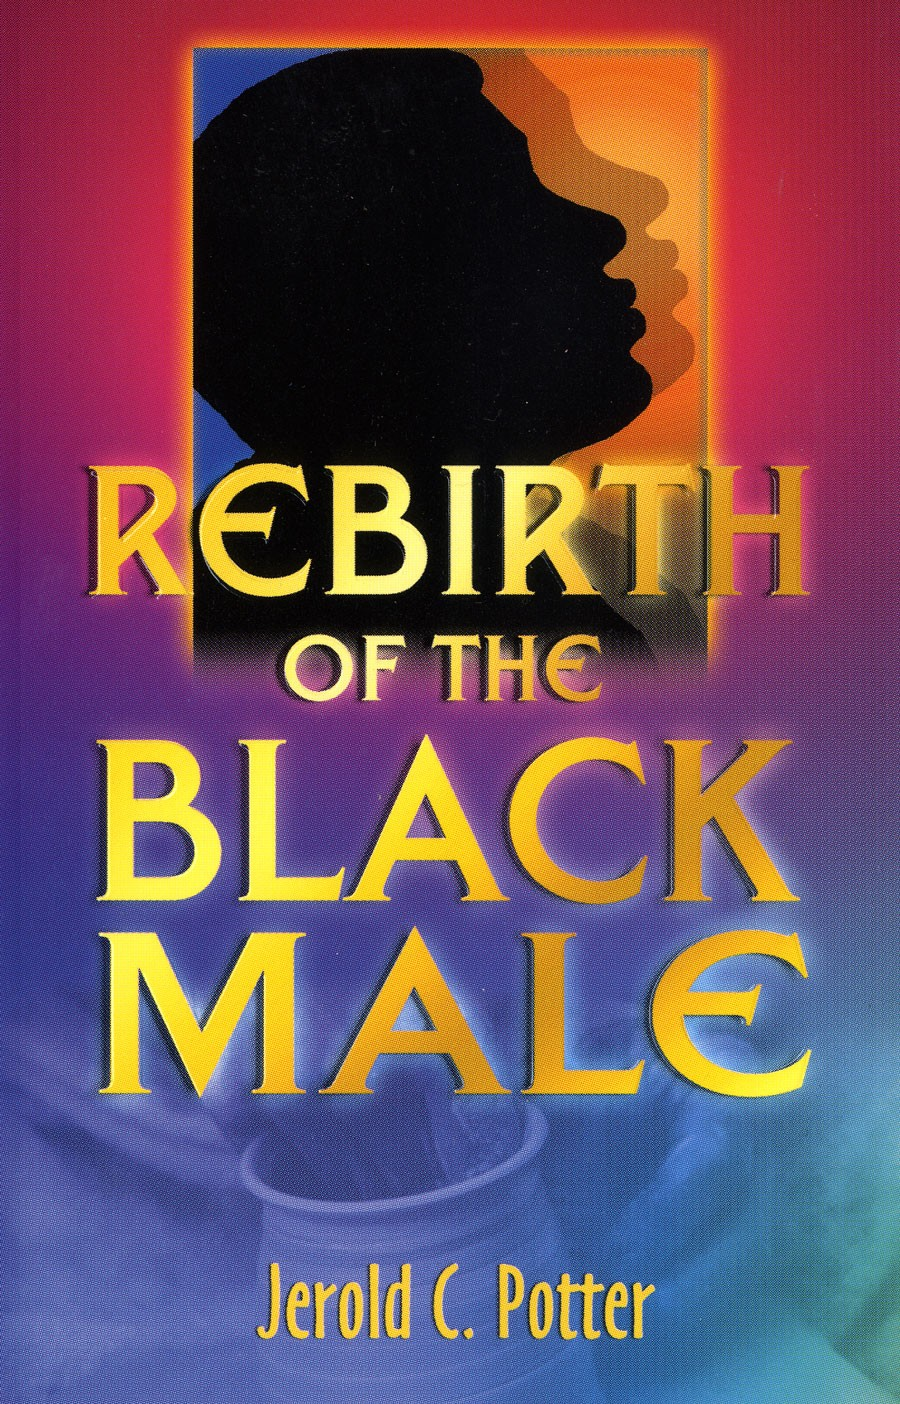 Rebirth of the Black Male